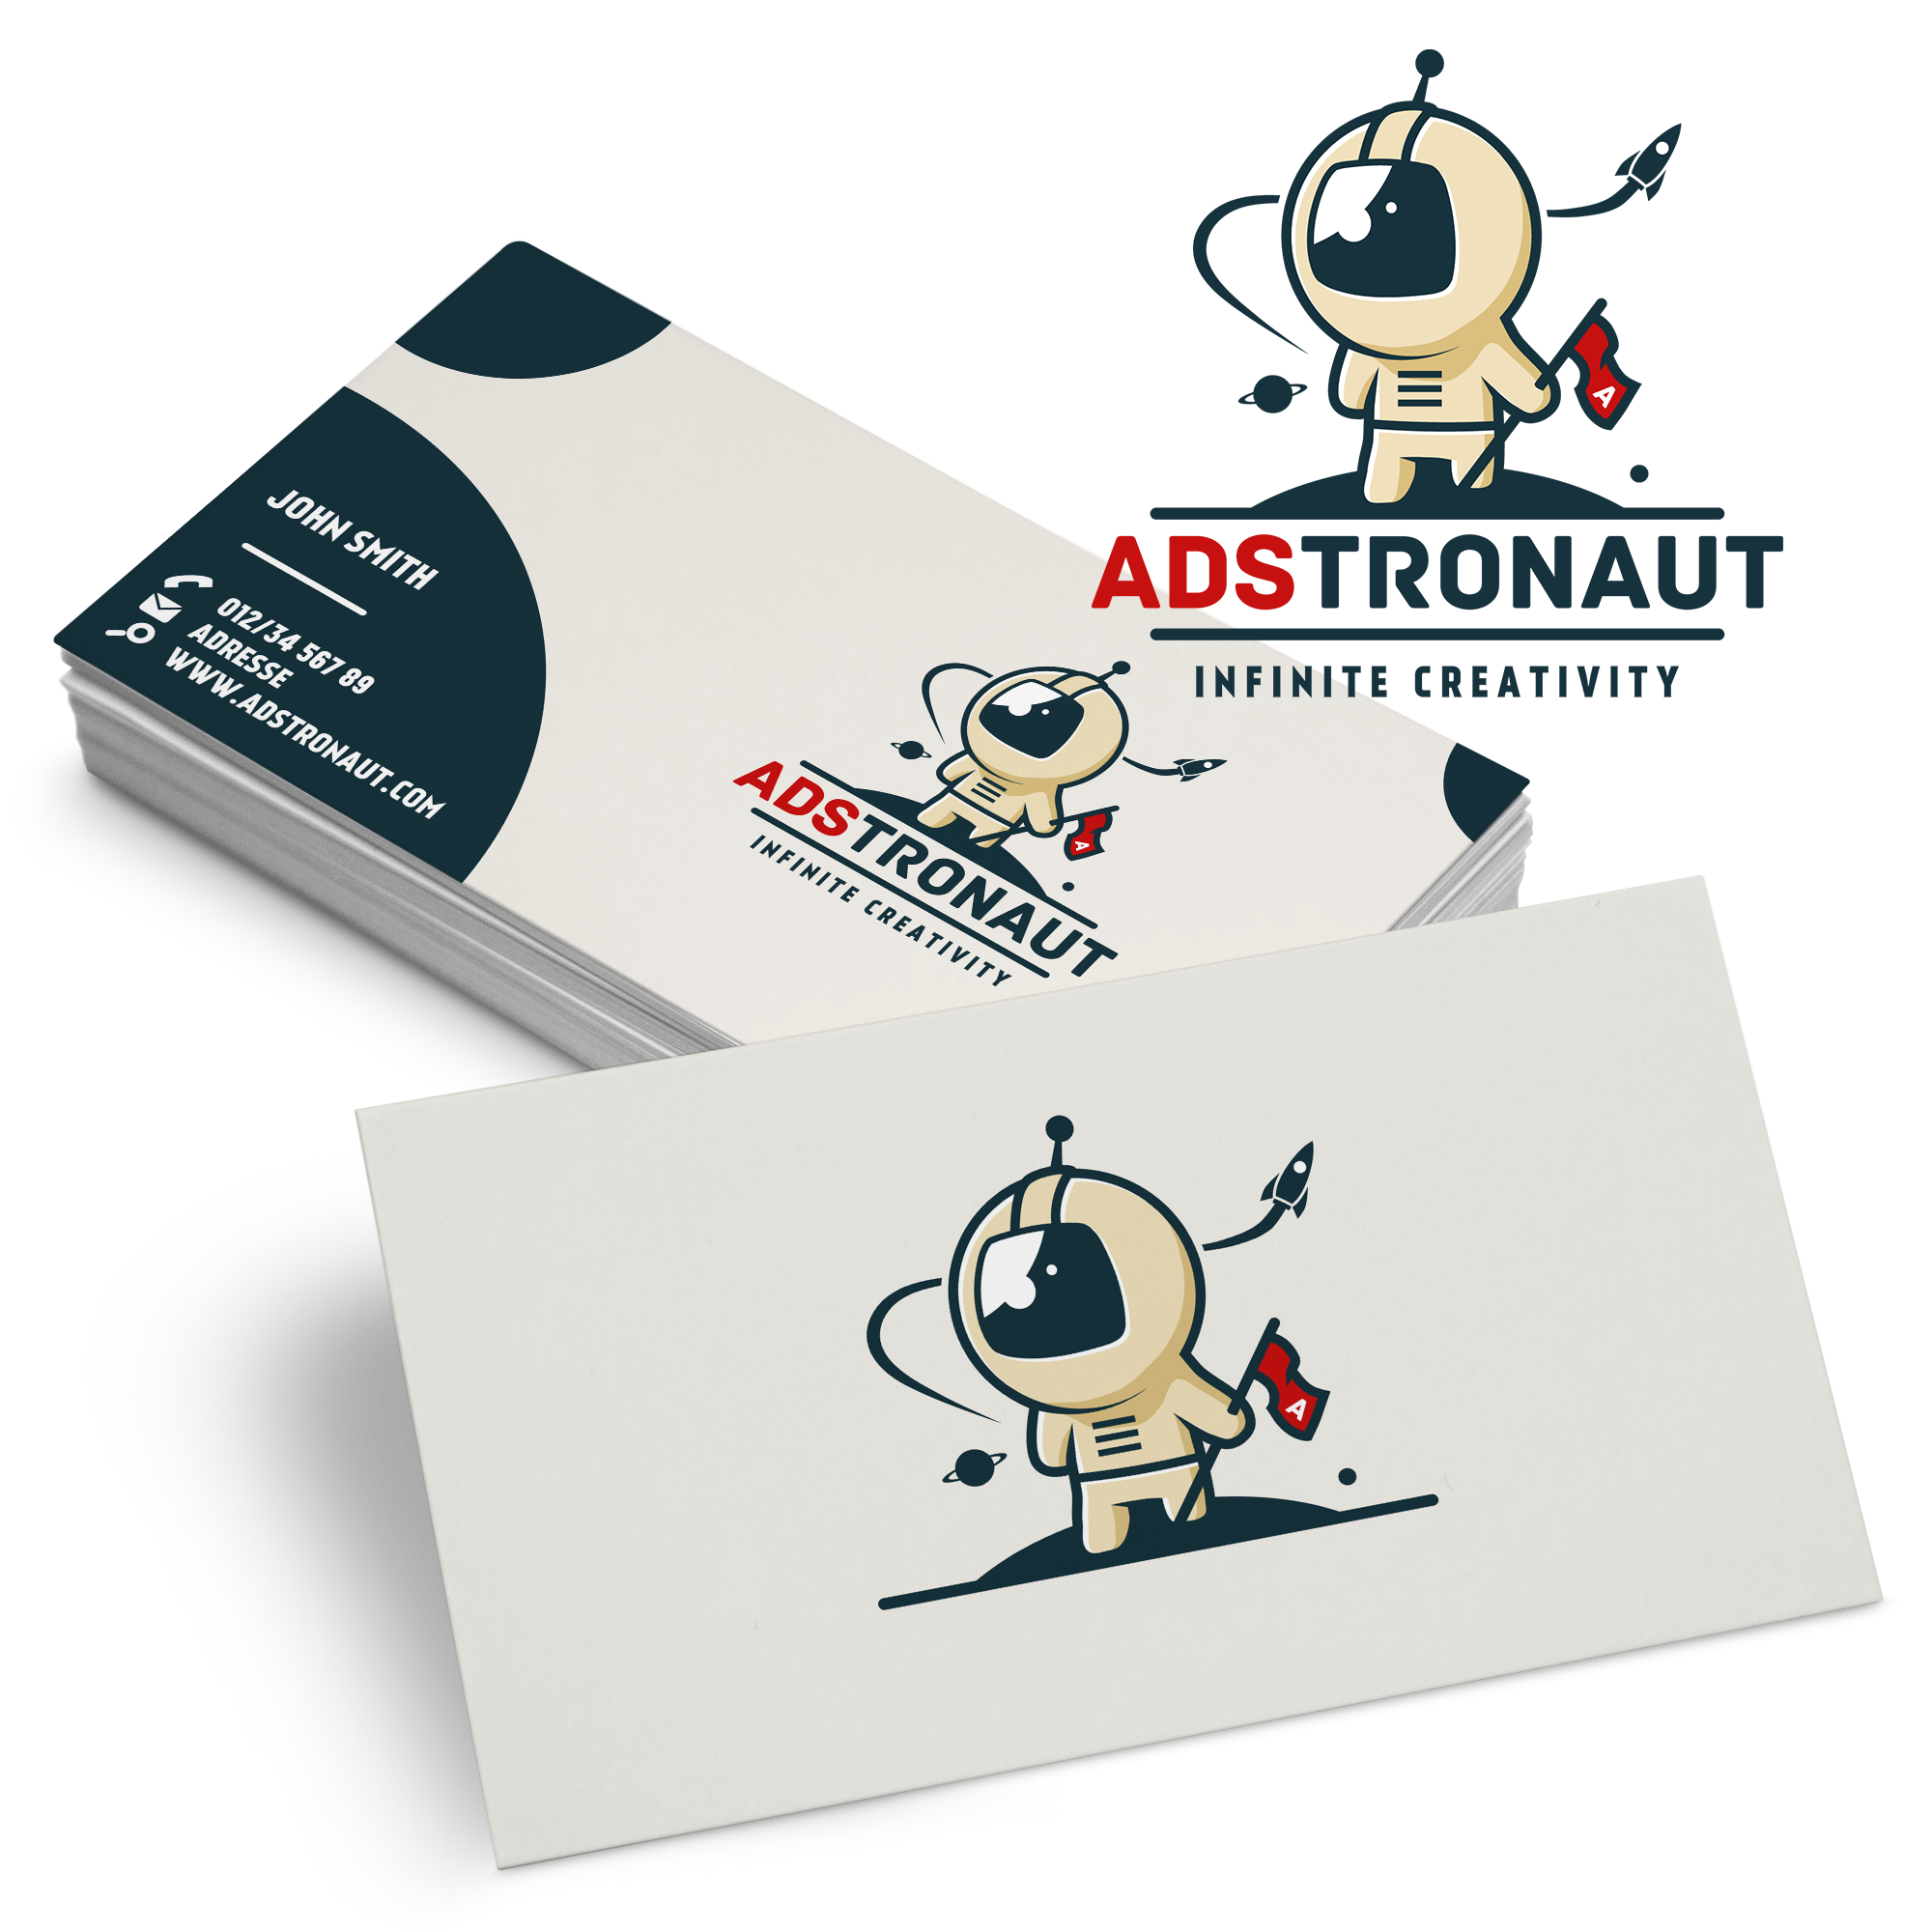 logo-business-card-design von Widakk